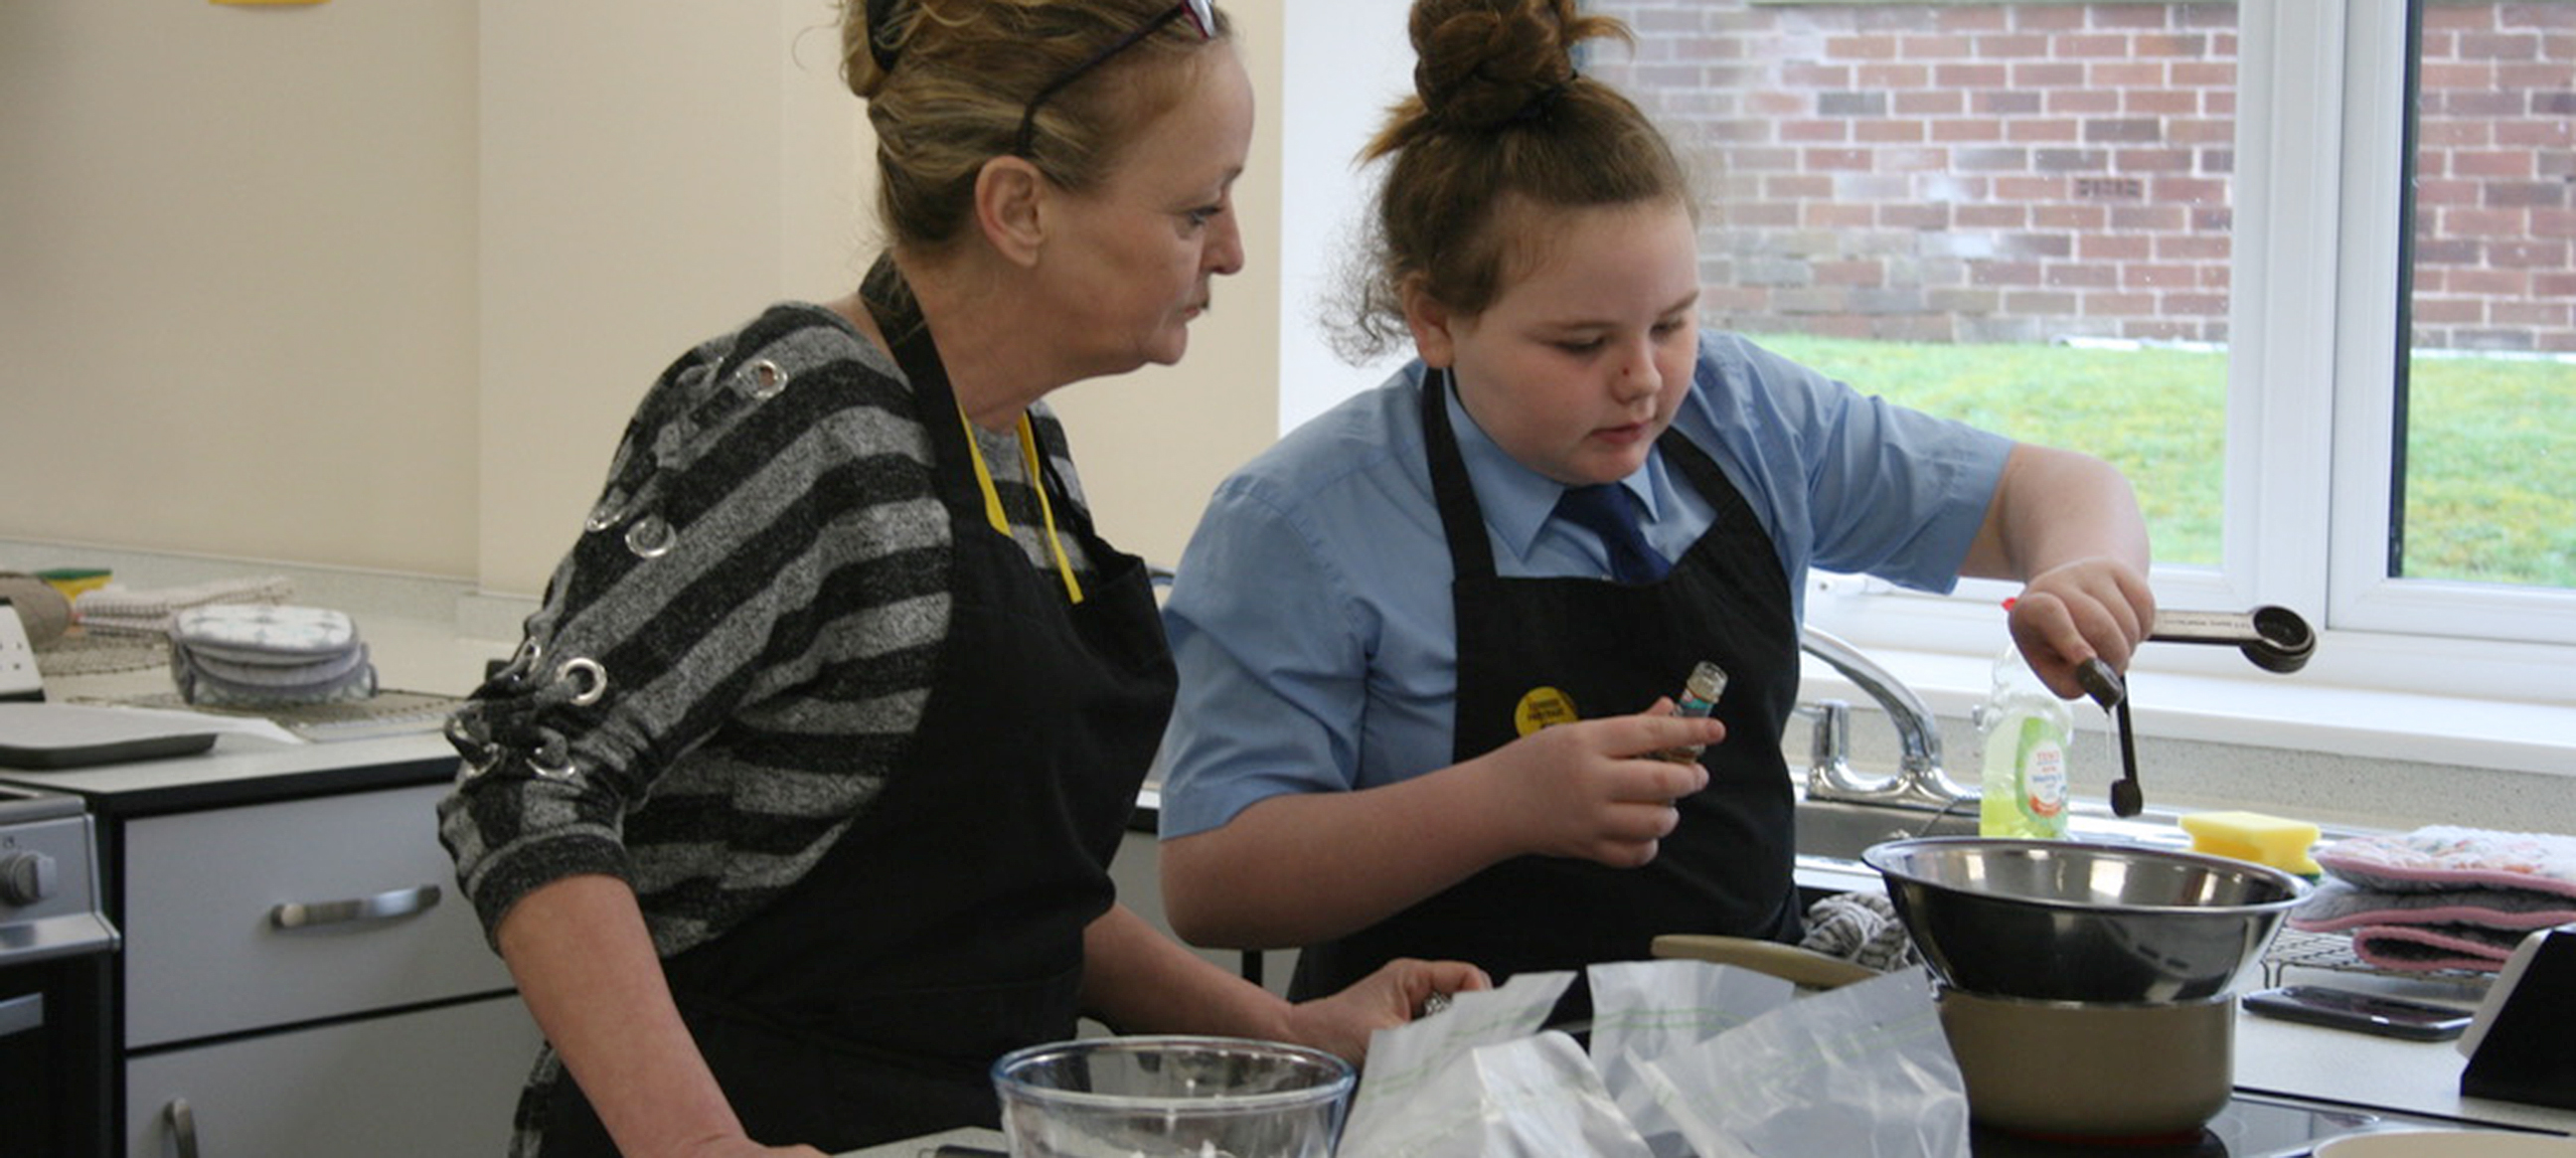 International Women's Day Baking Workshop